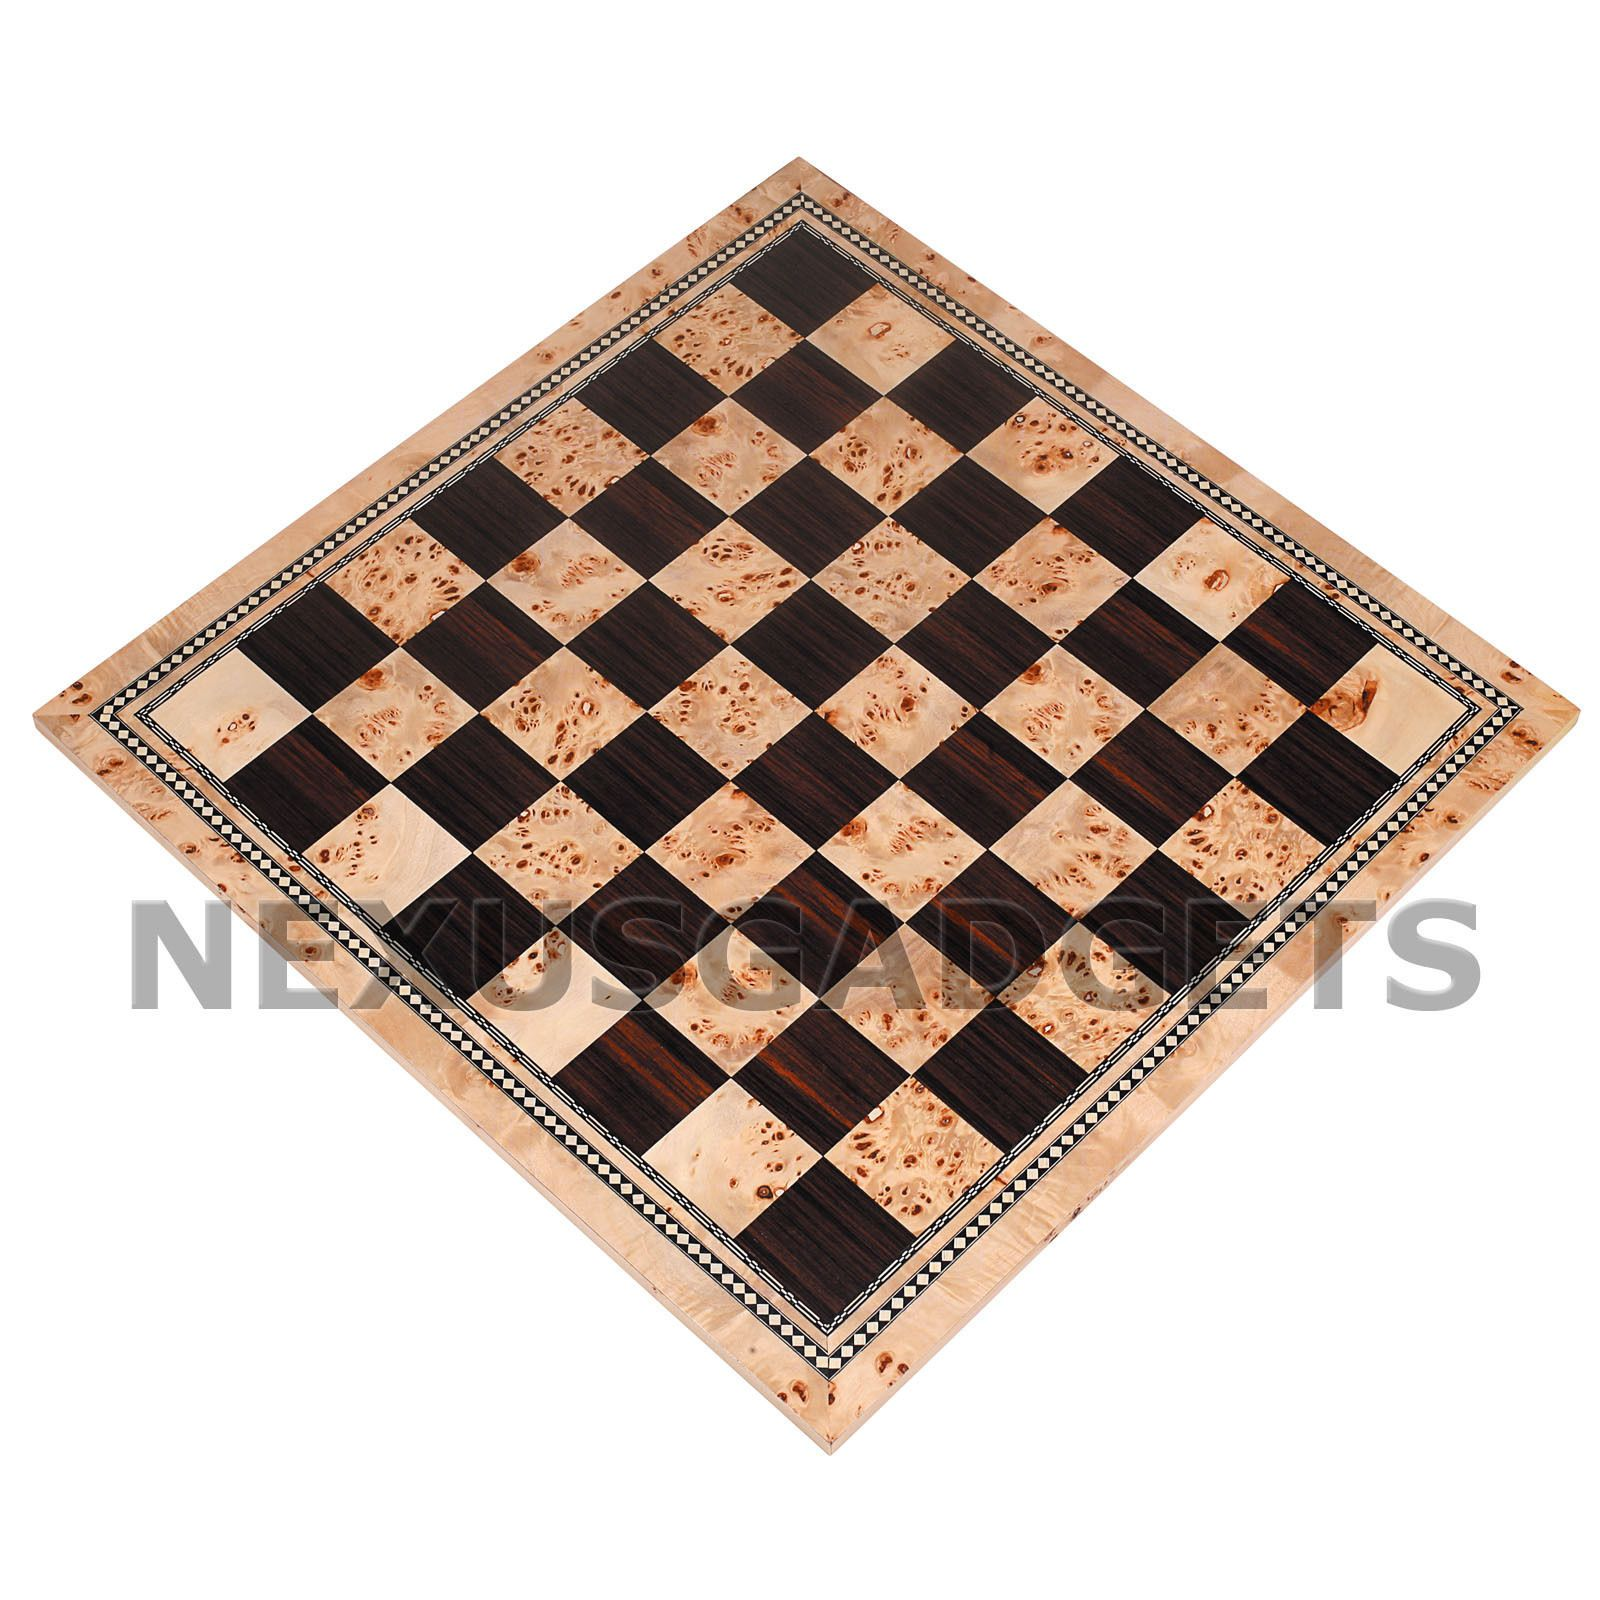 Atil Chess X Large 21 Inch Tournament Board Only Burl Inlaid Wood Flat Game Set 28672734436 Ebay Chess Board Wood Games Wood Chess Set